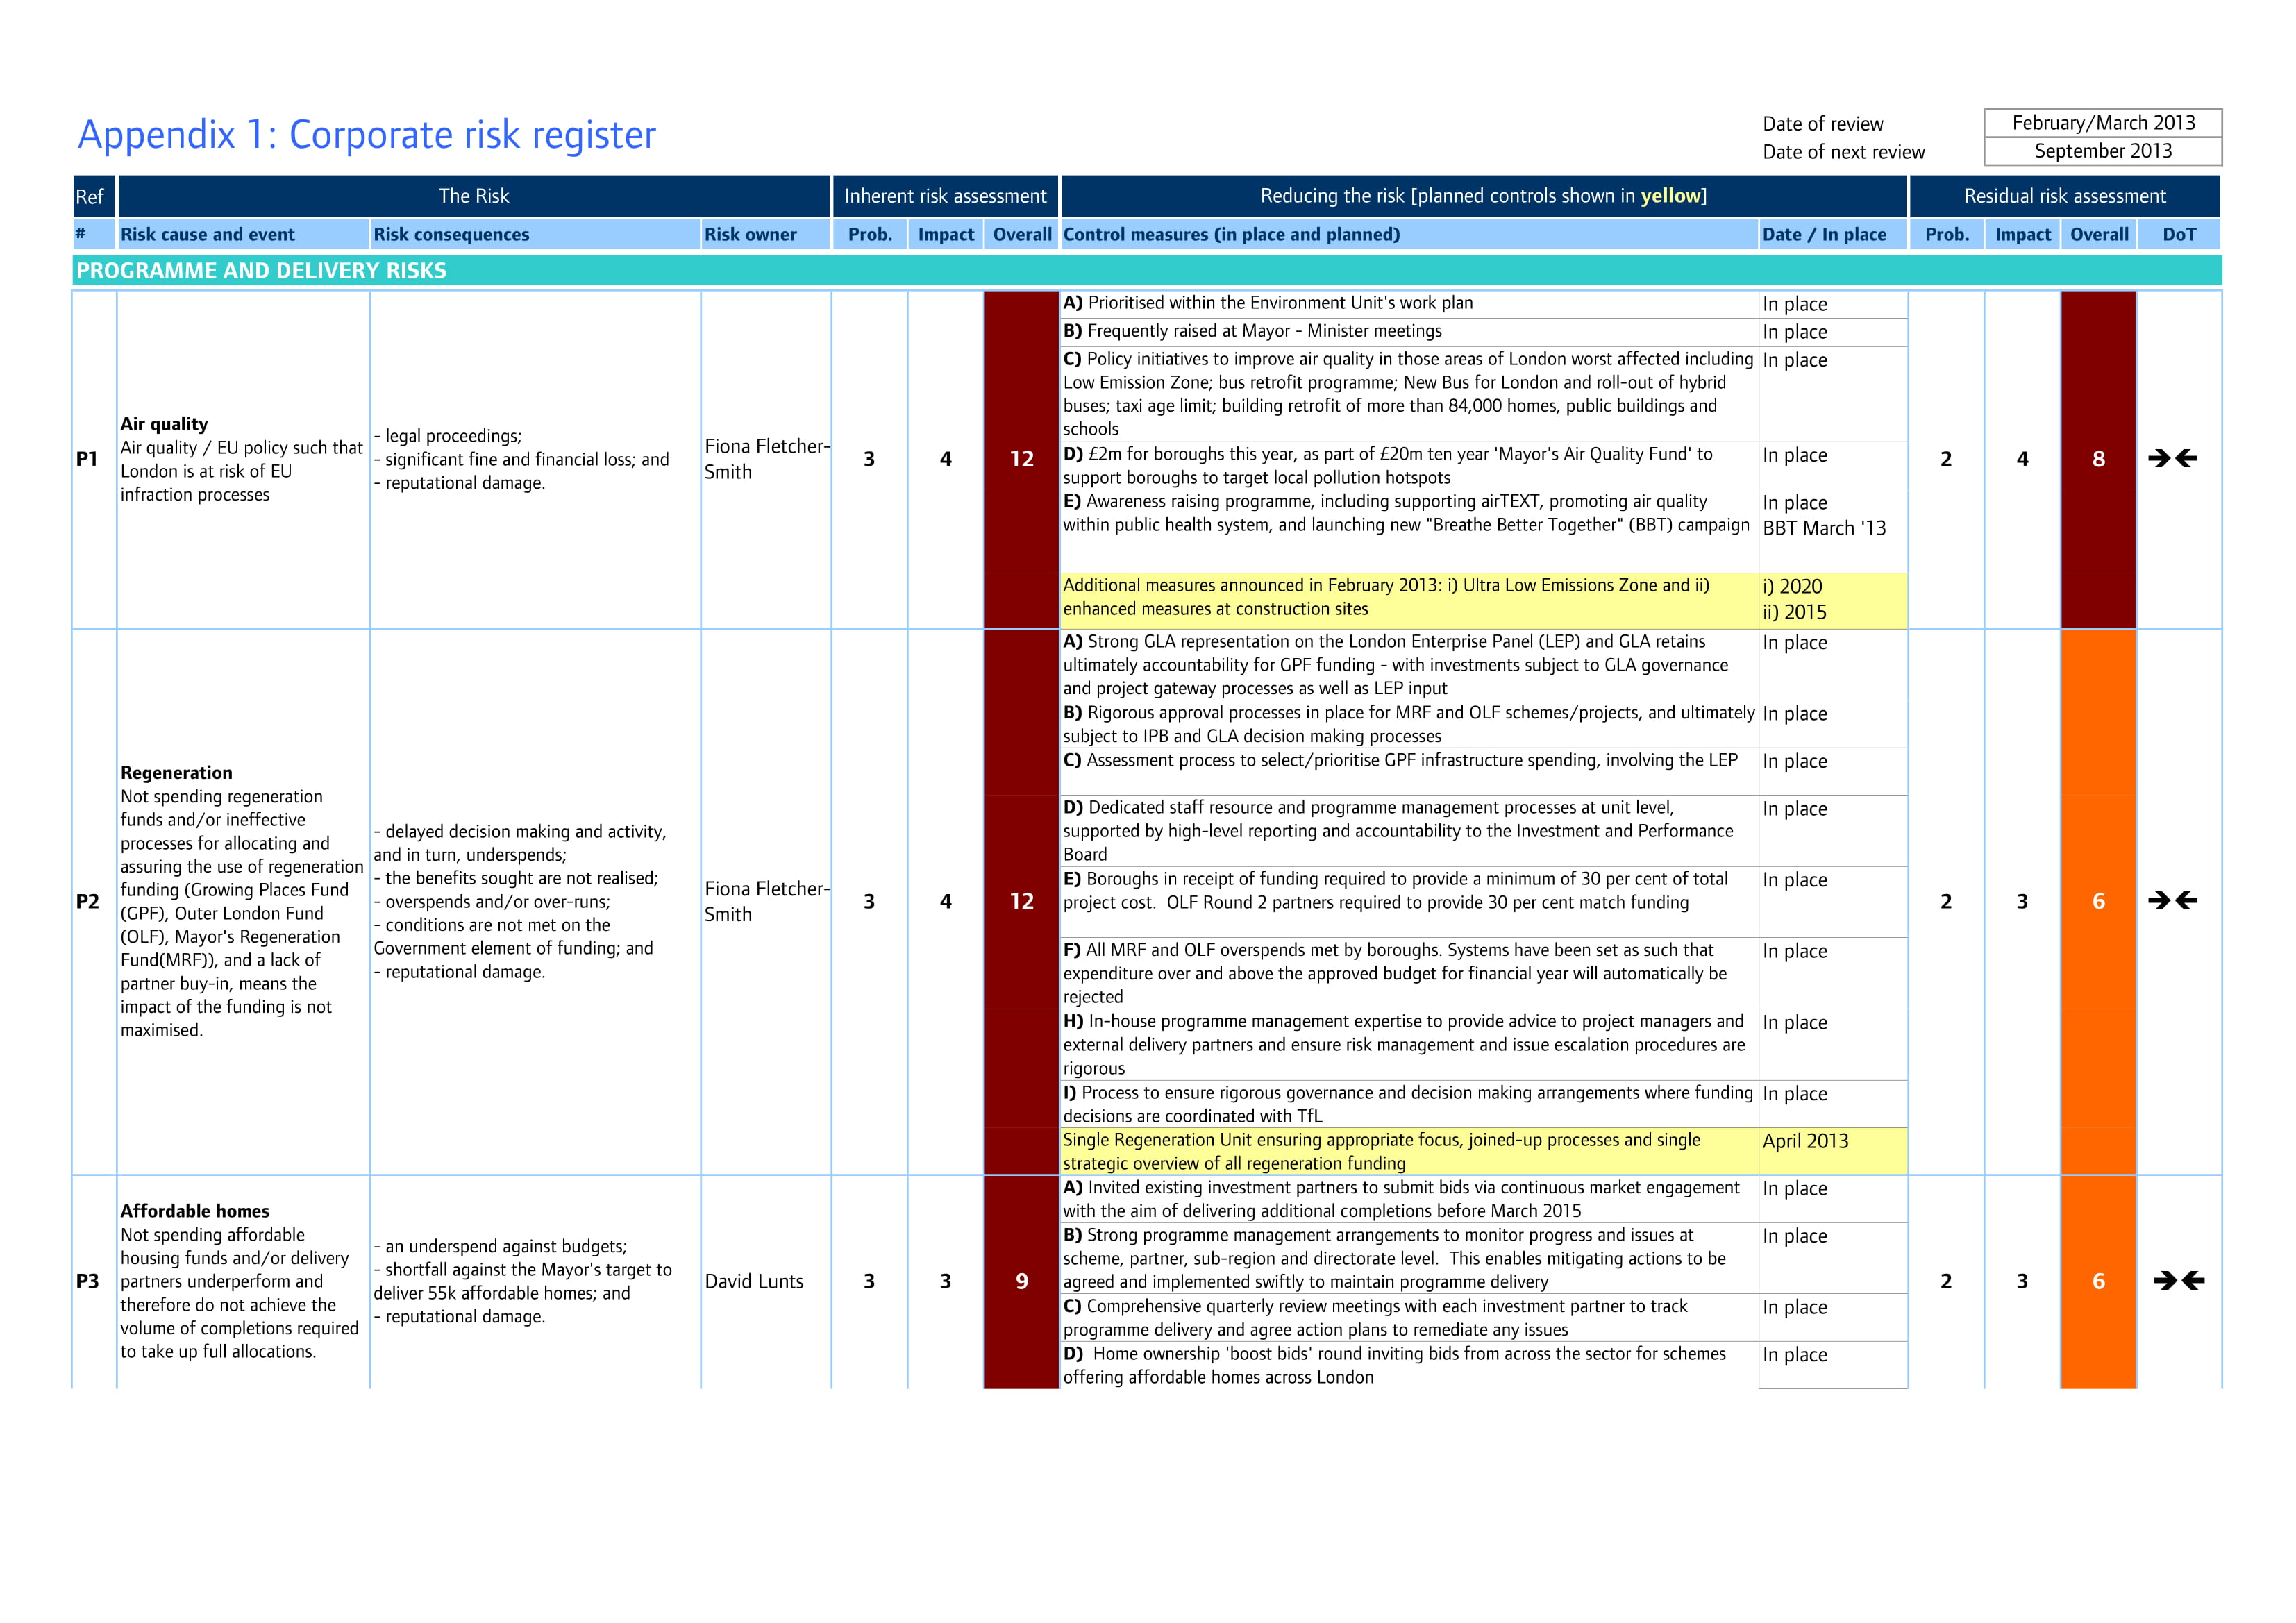 risk register template 26 risk register examples pdf doc examples 24508 | Corporate Risk Register Template Example